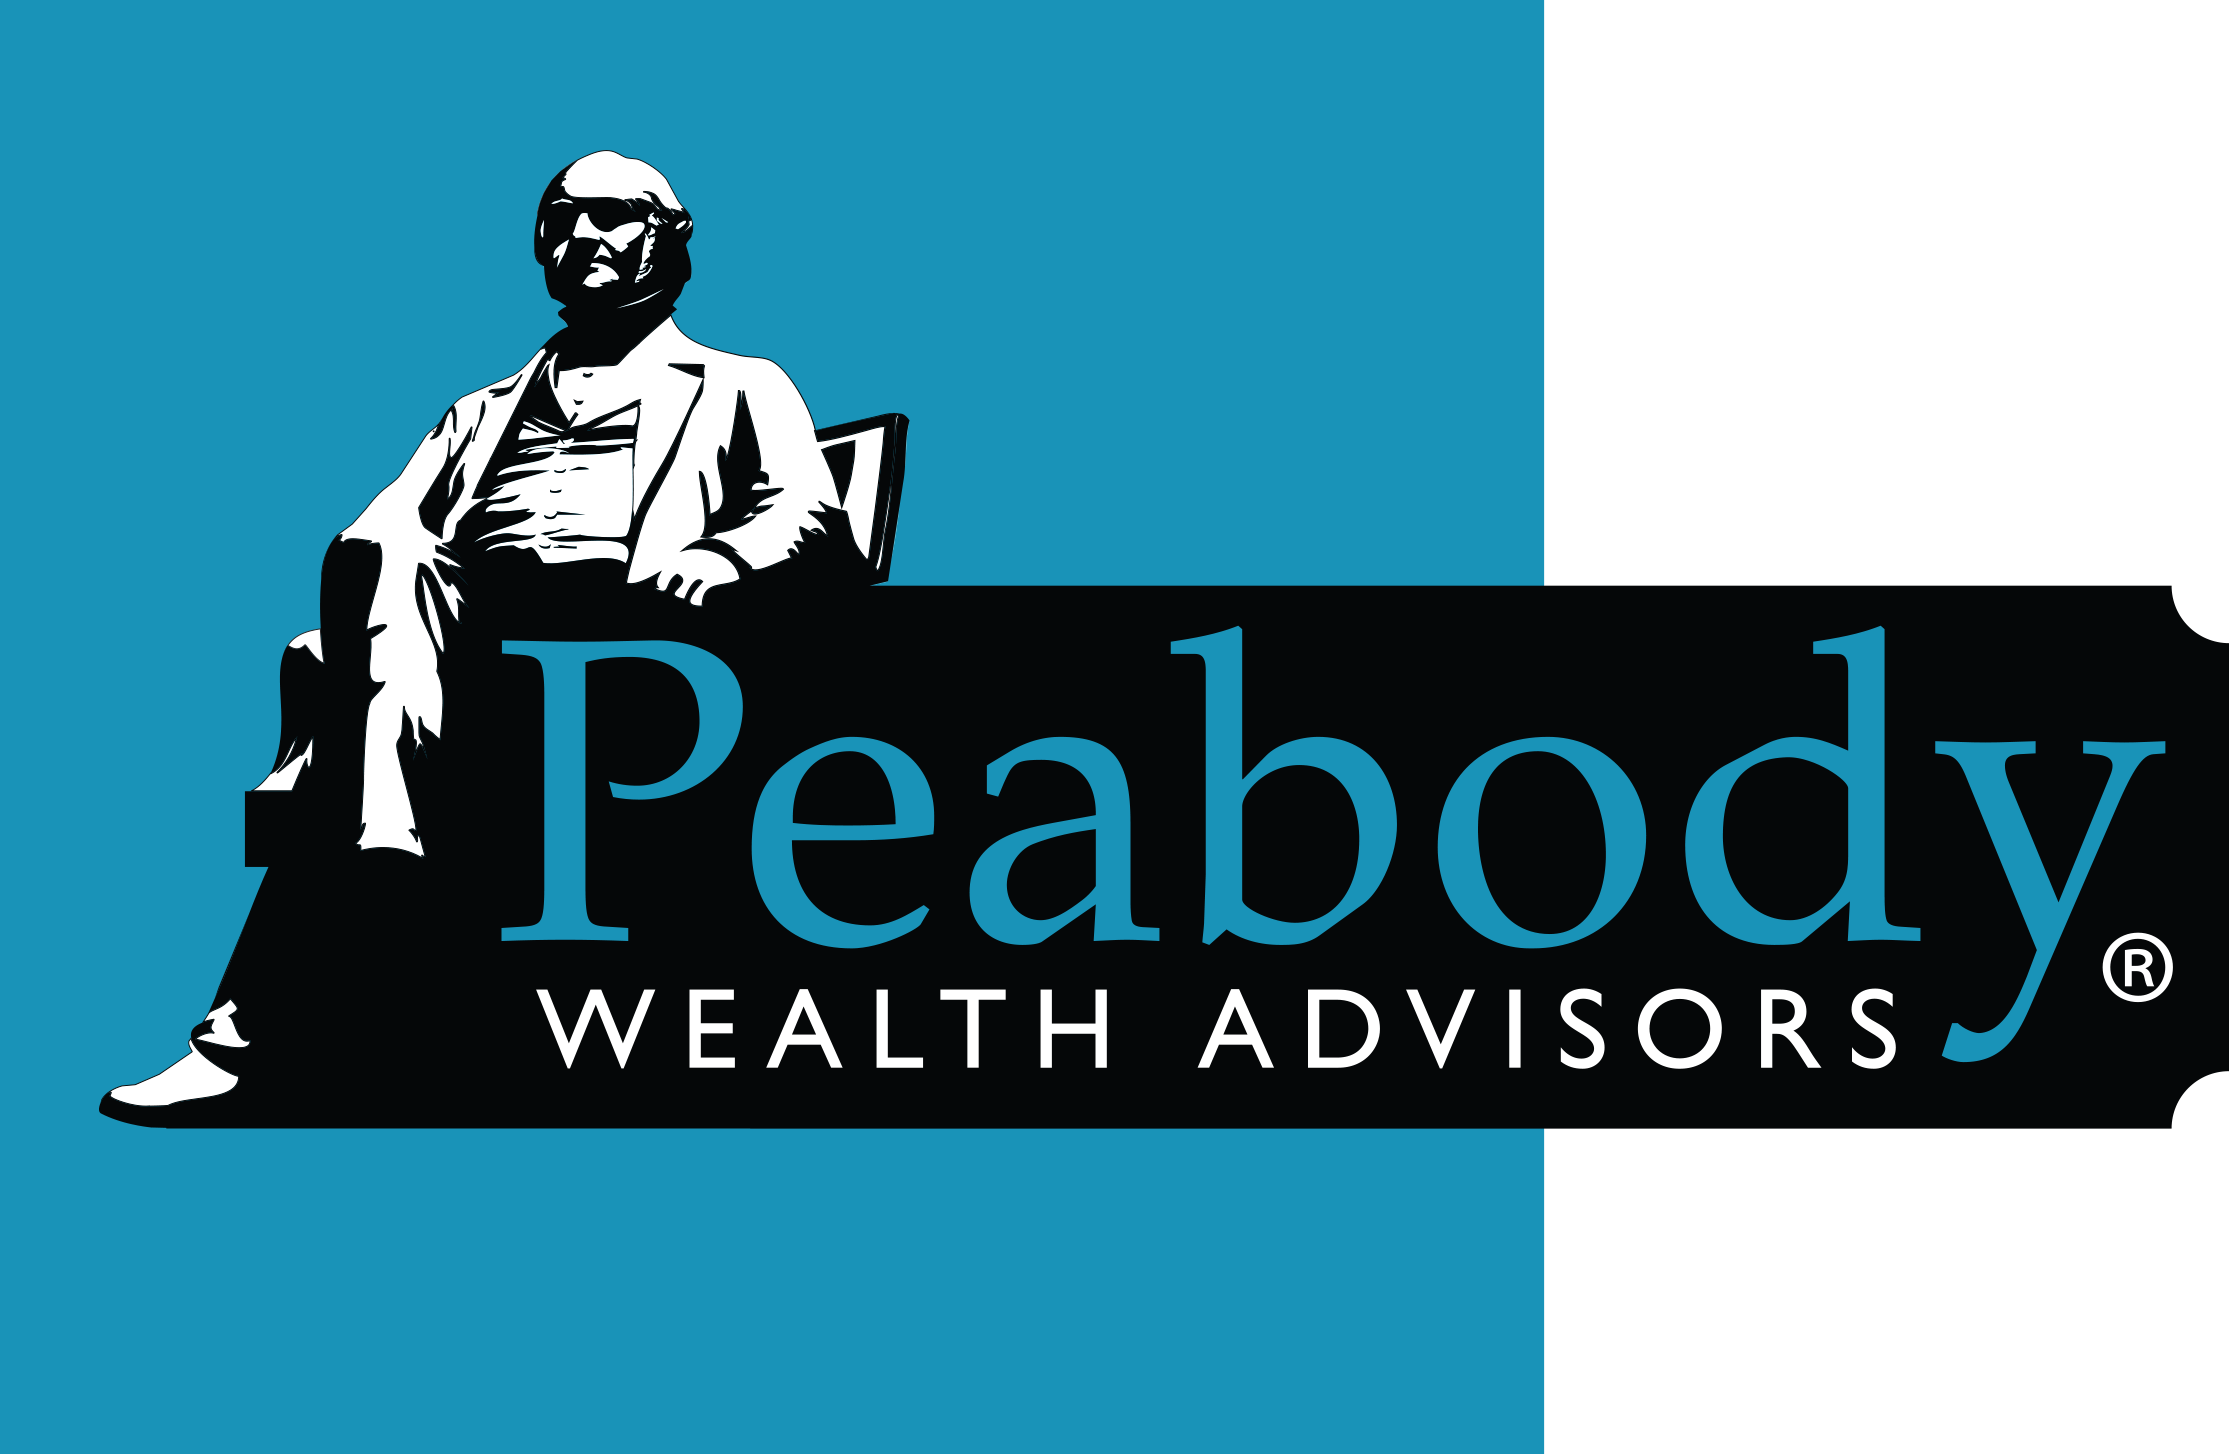 Peabody Wealth Advisors - Danvers, MA